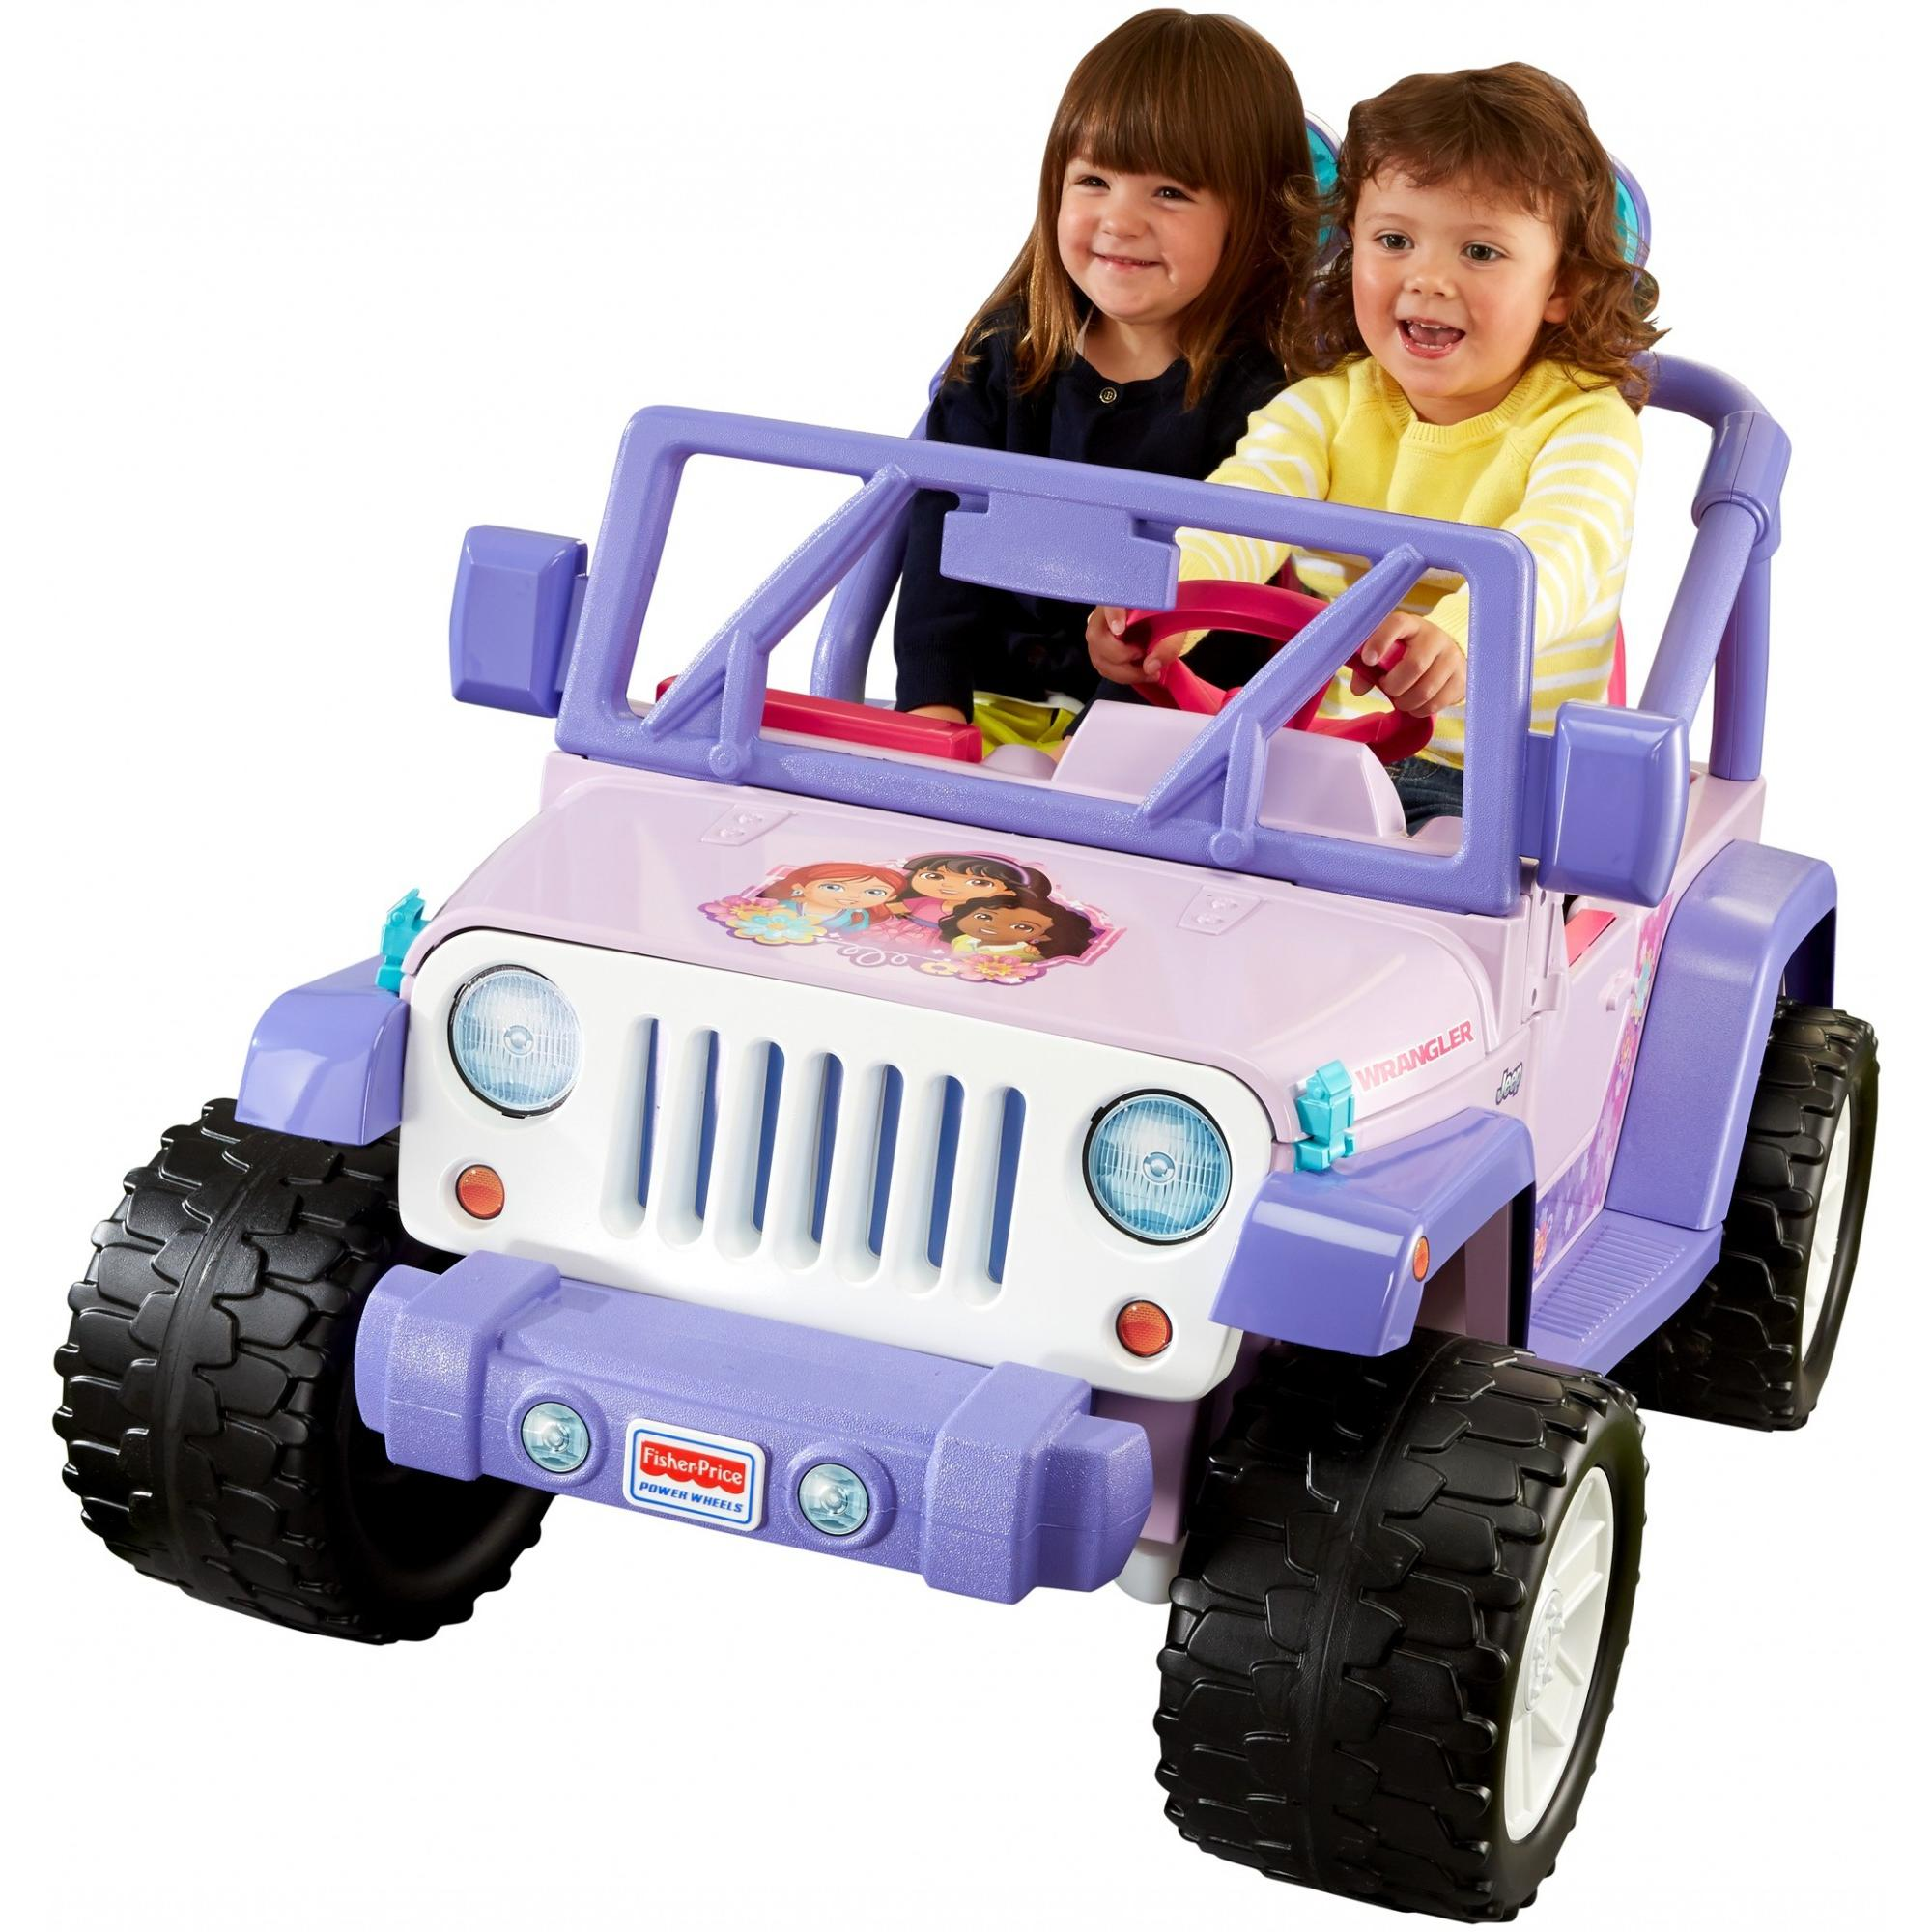 Power Wheels Nickelodeon Dora and Friends Jeep Wrangler 12-Volt Battery-Powered Ride-On